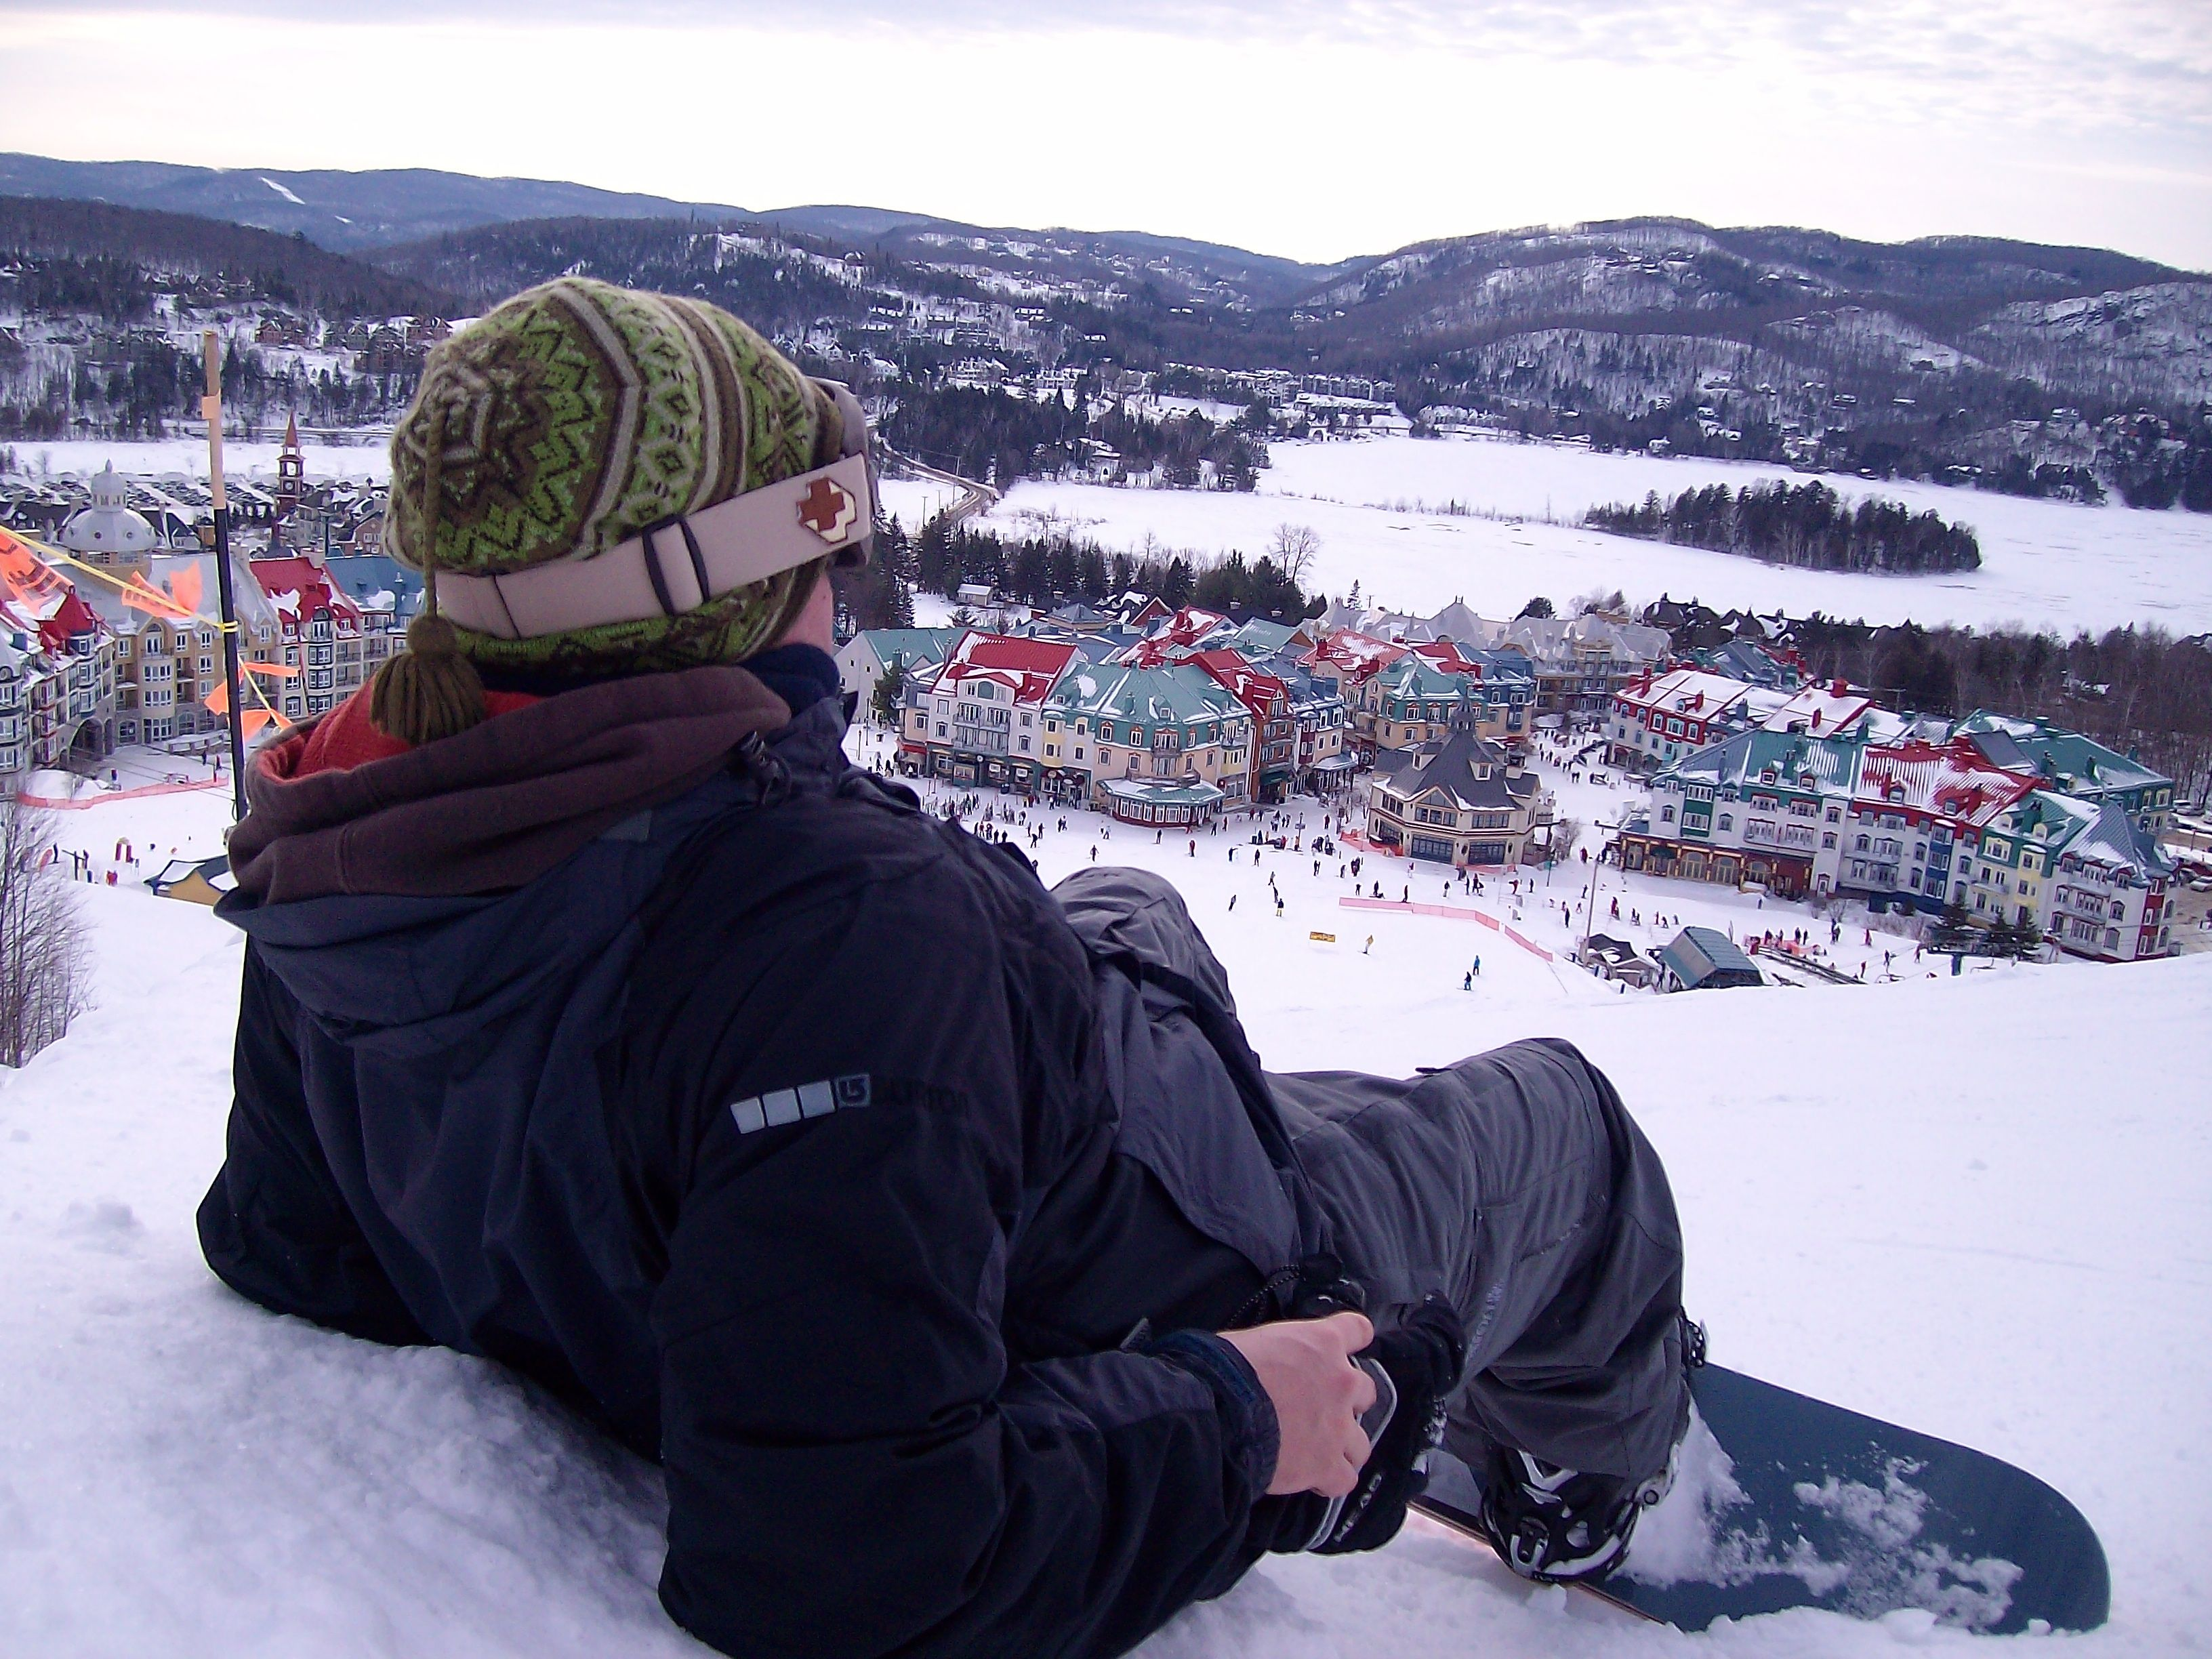 Winter Activities In Canada You Just Cannot Miss - 10 ideas for winter fun in quebec city